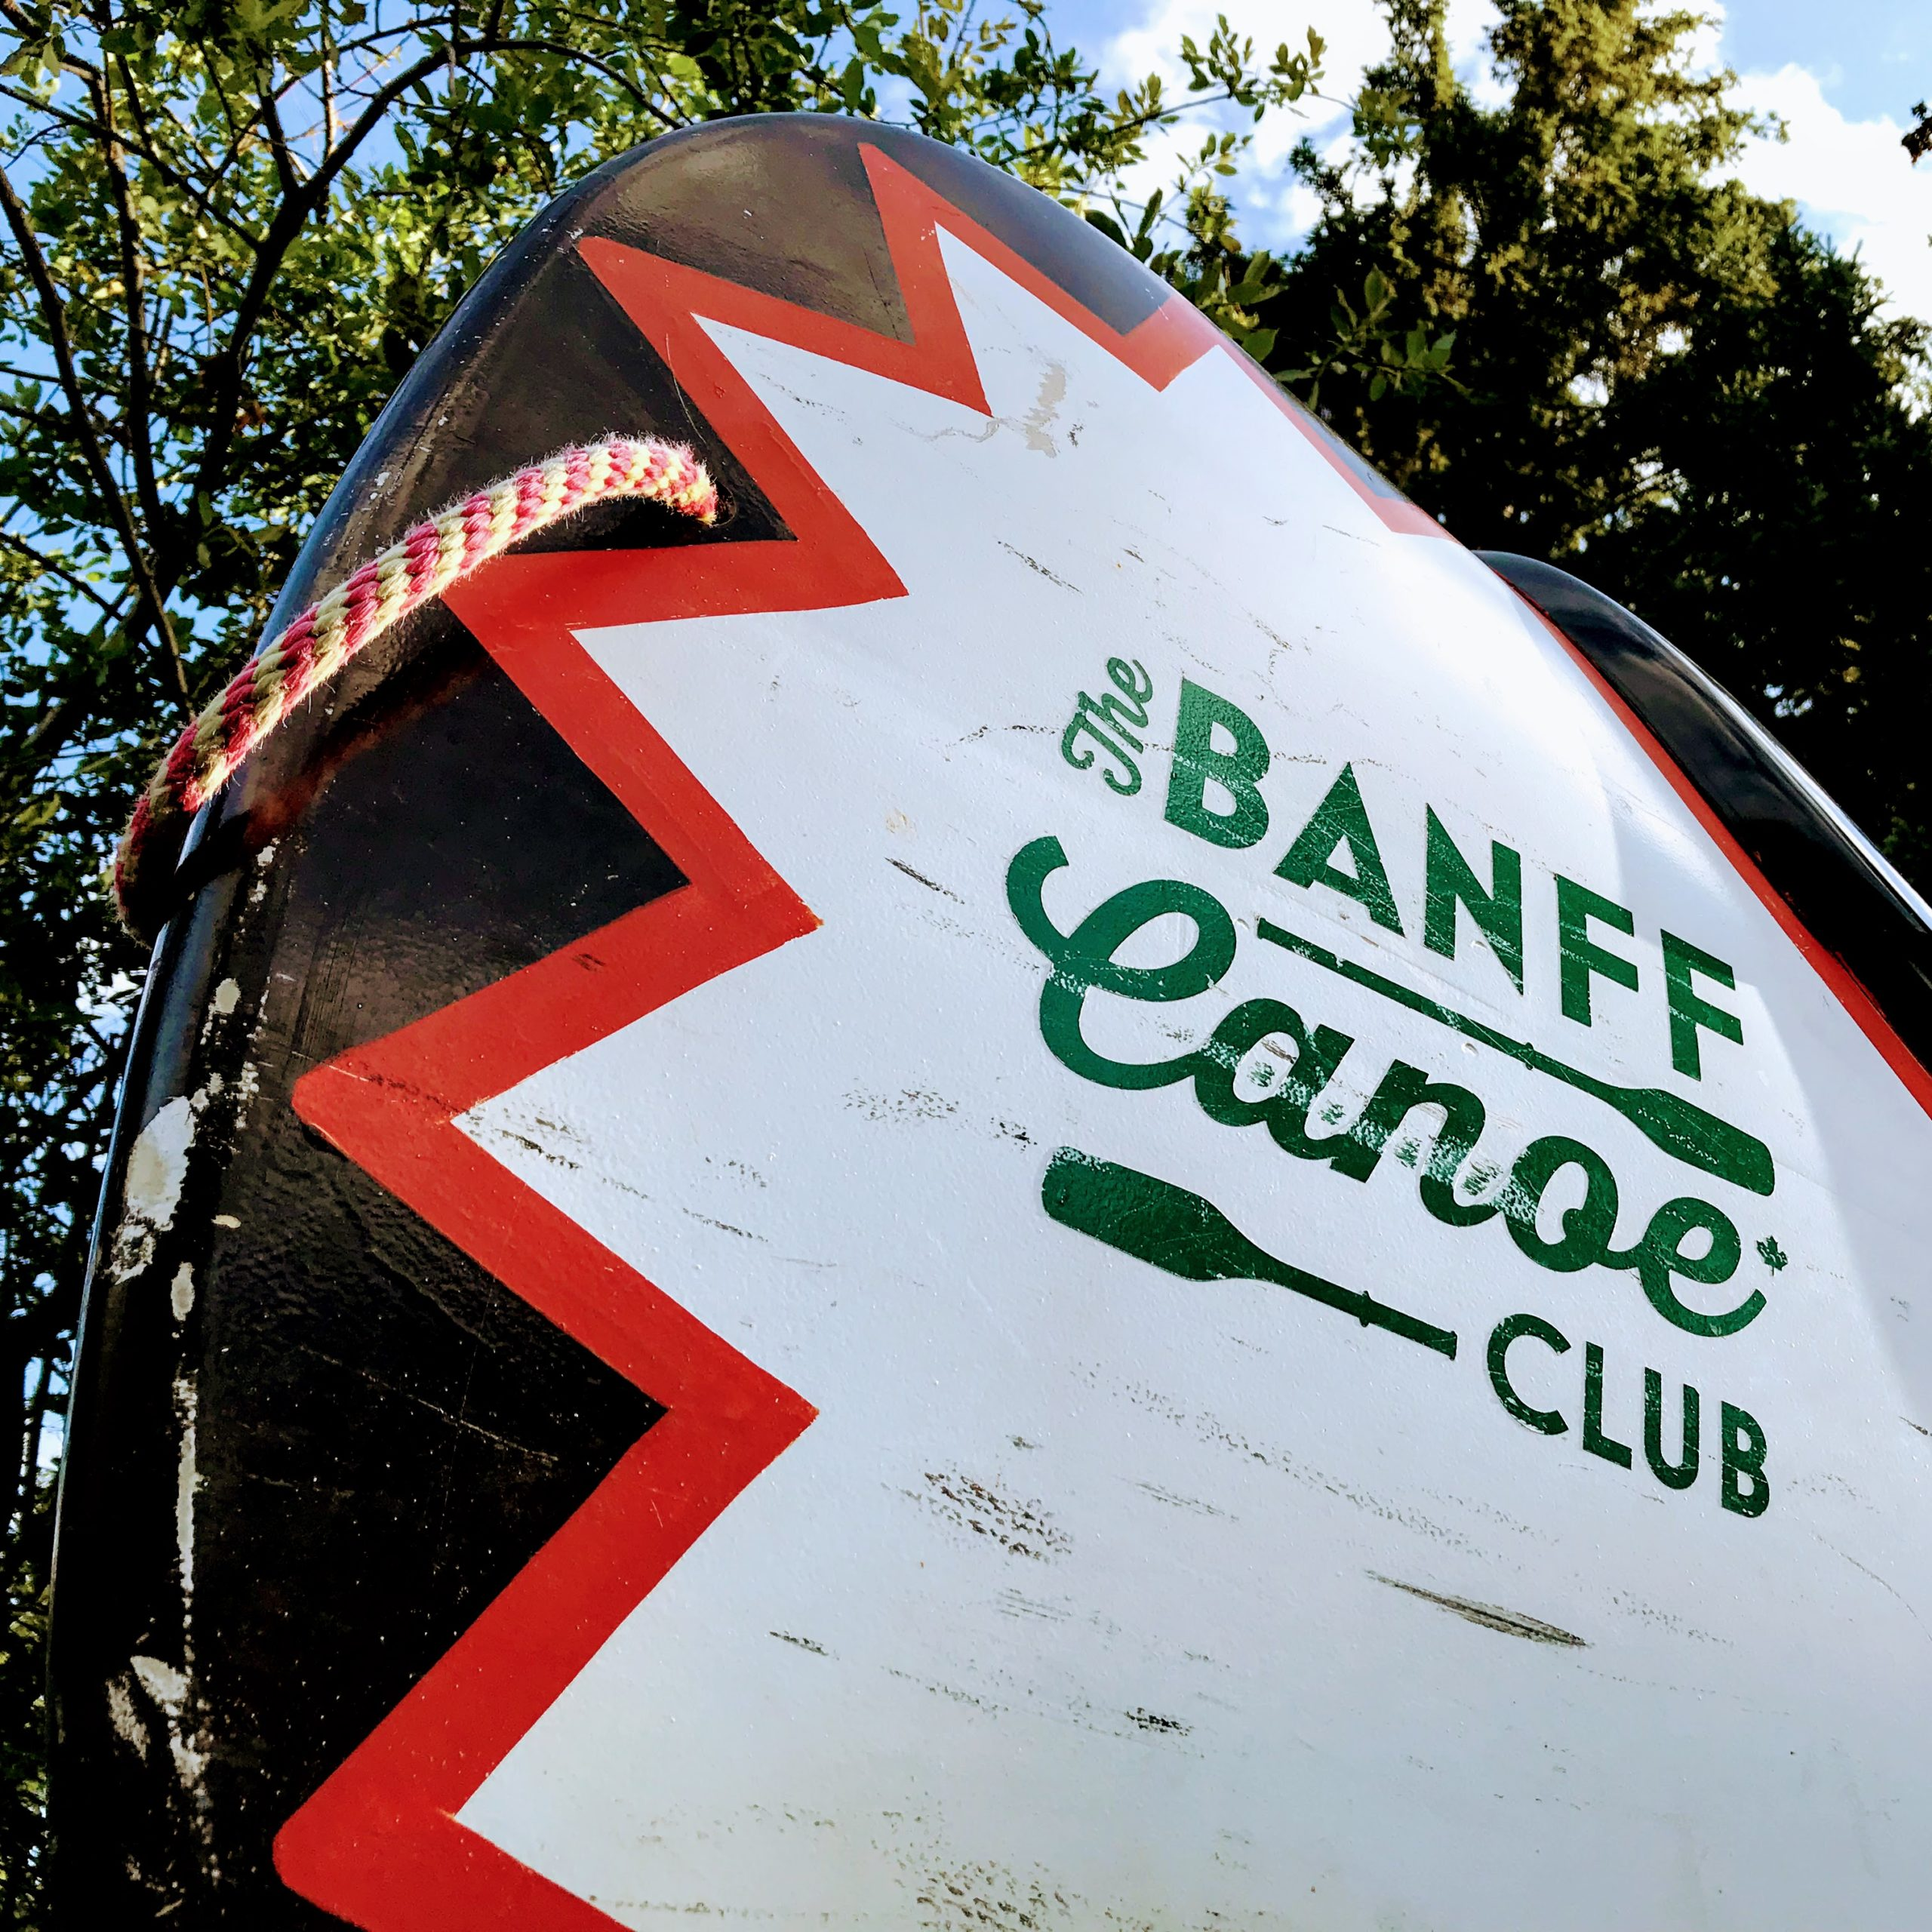 The Banff Canoe Club